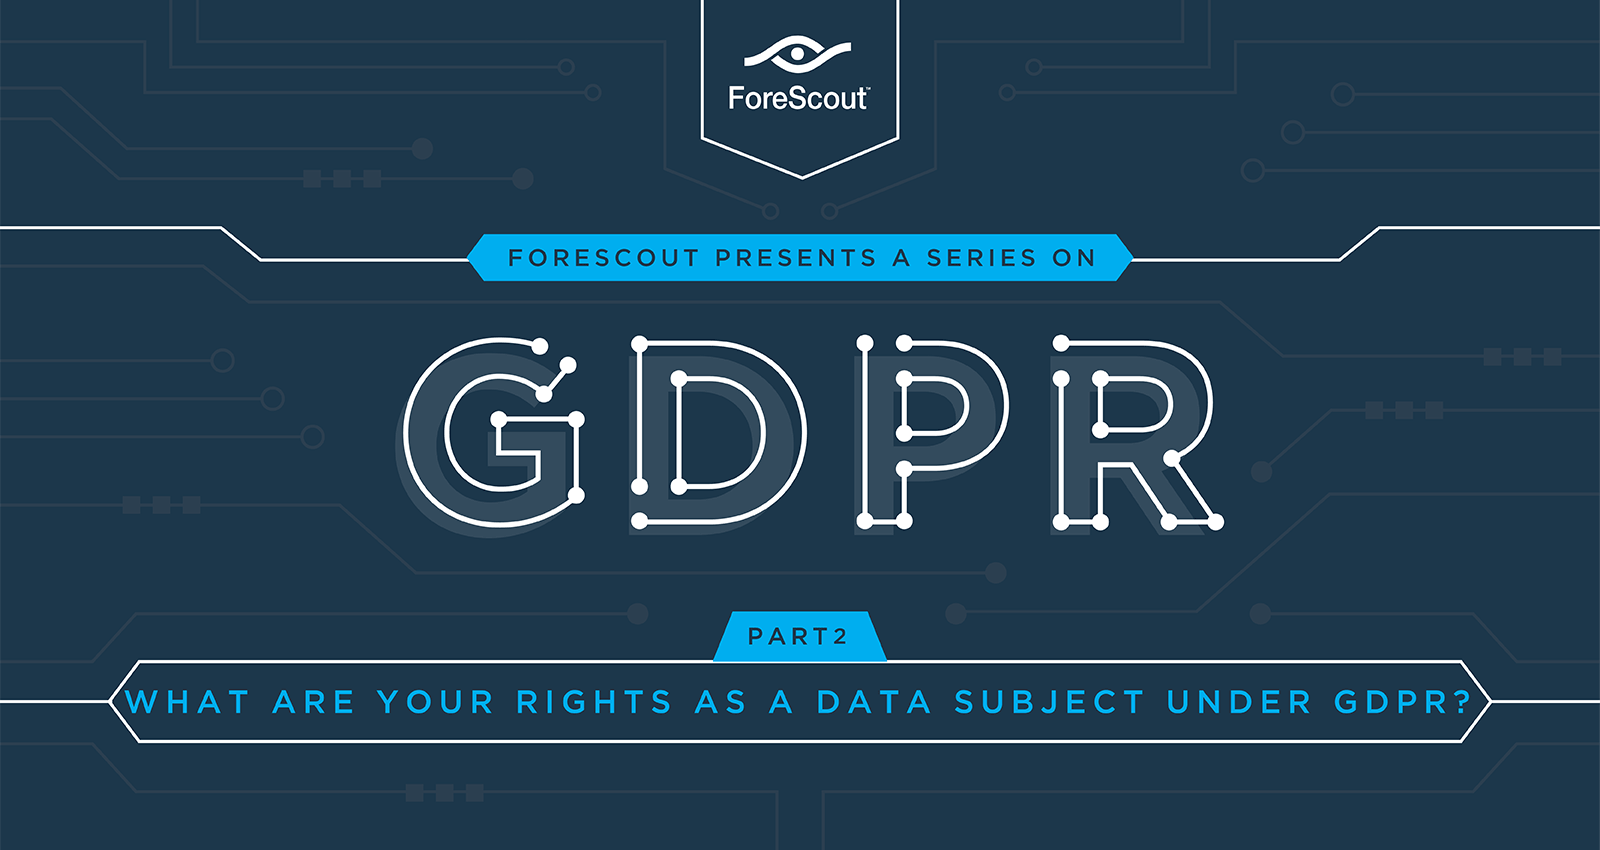 What Are Your Rights as a Data Subject Under GDPR? - Forescout